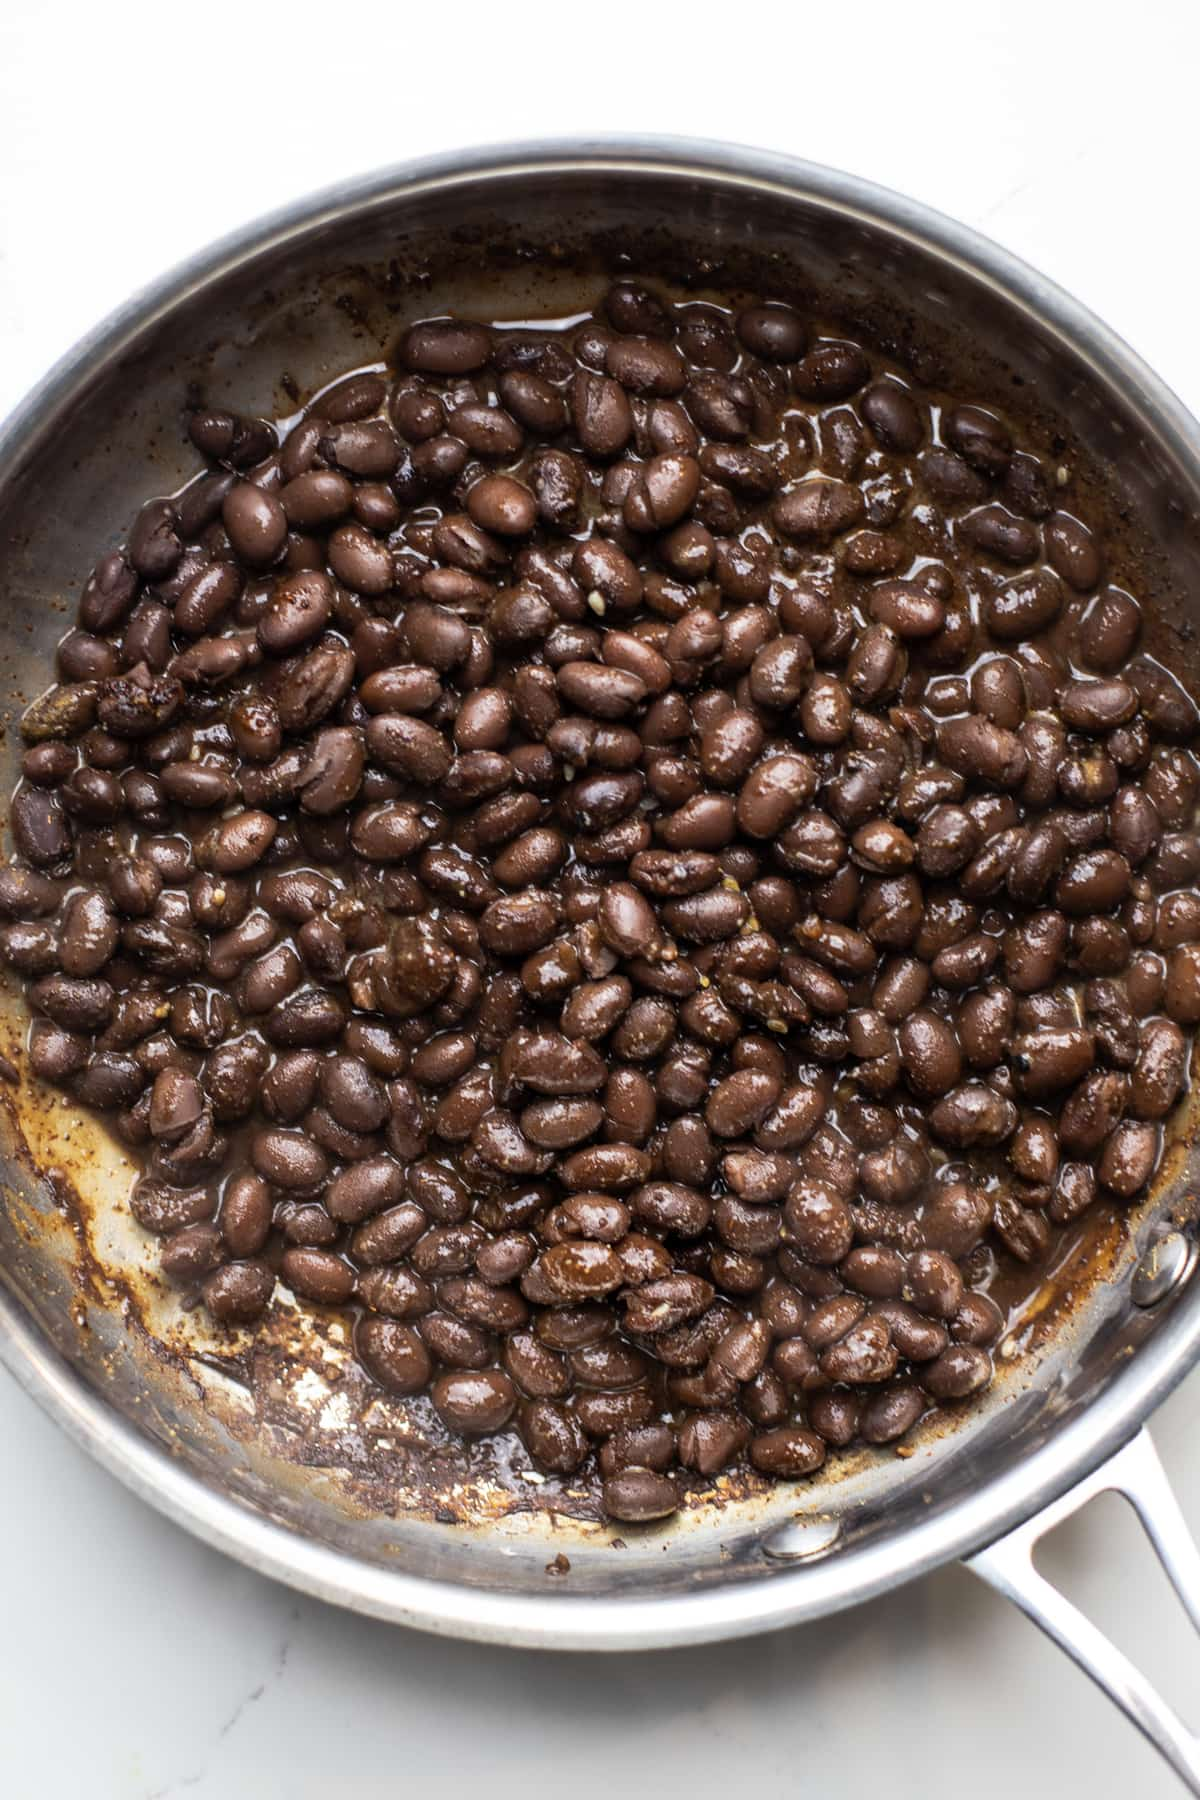 A stainless steal pan with black beans cooking in it.